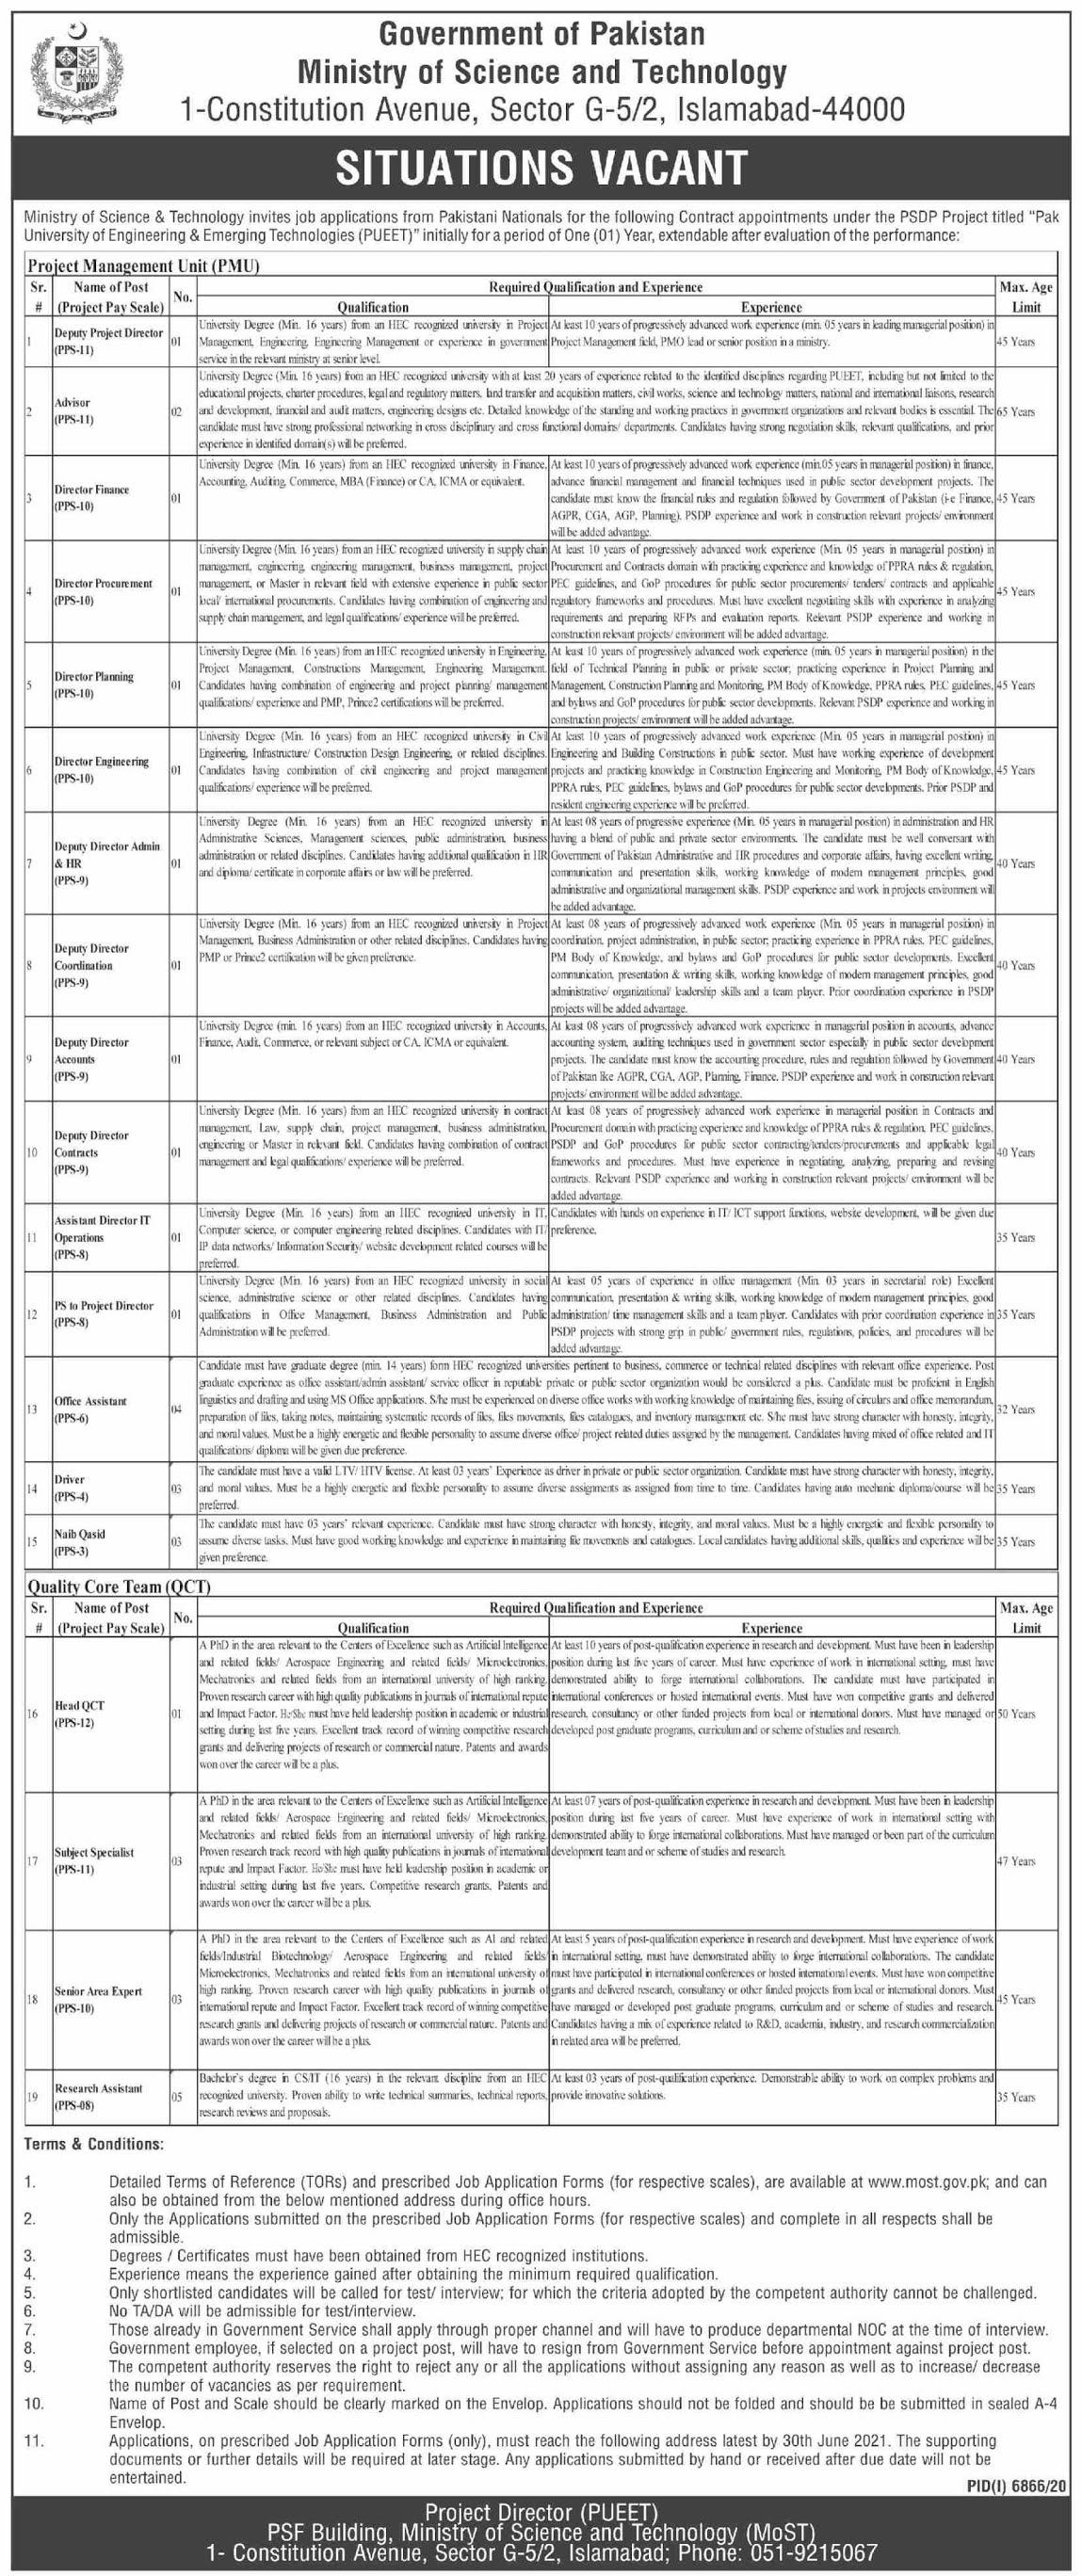 Ministry of Science and Technology MOST Jobs 2021